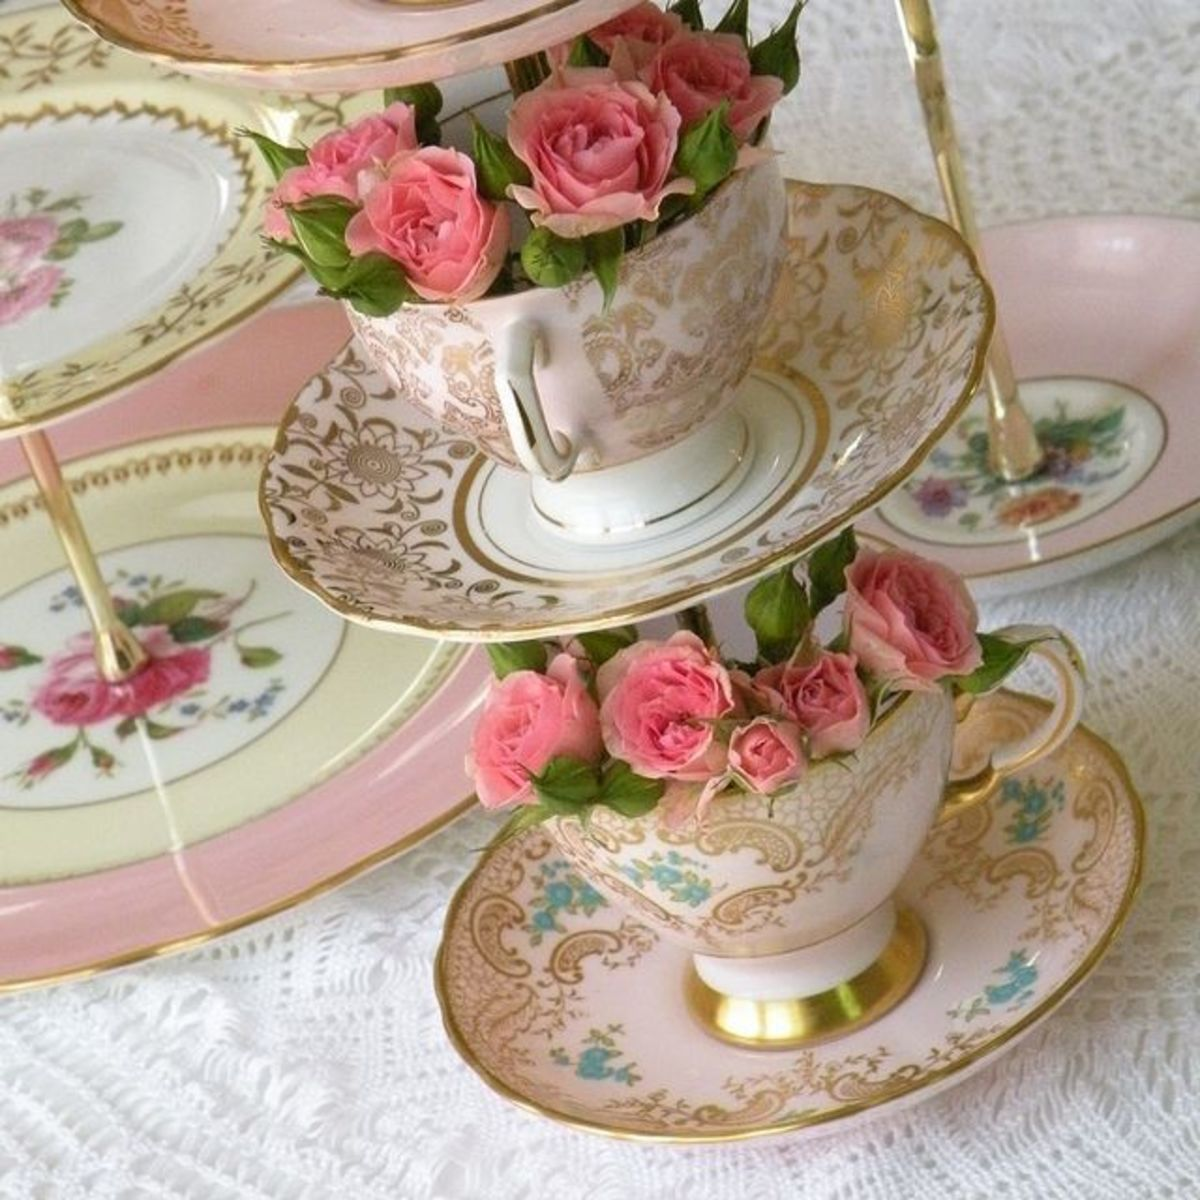 This lovely centrepiece has been made by drilling through 3 teacups and saucers and then stacking them on a metal rod.